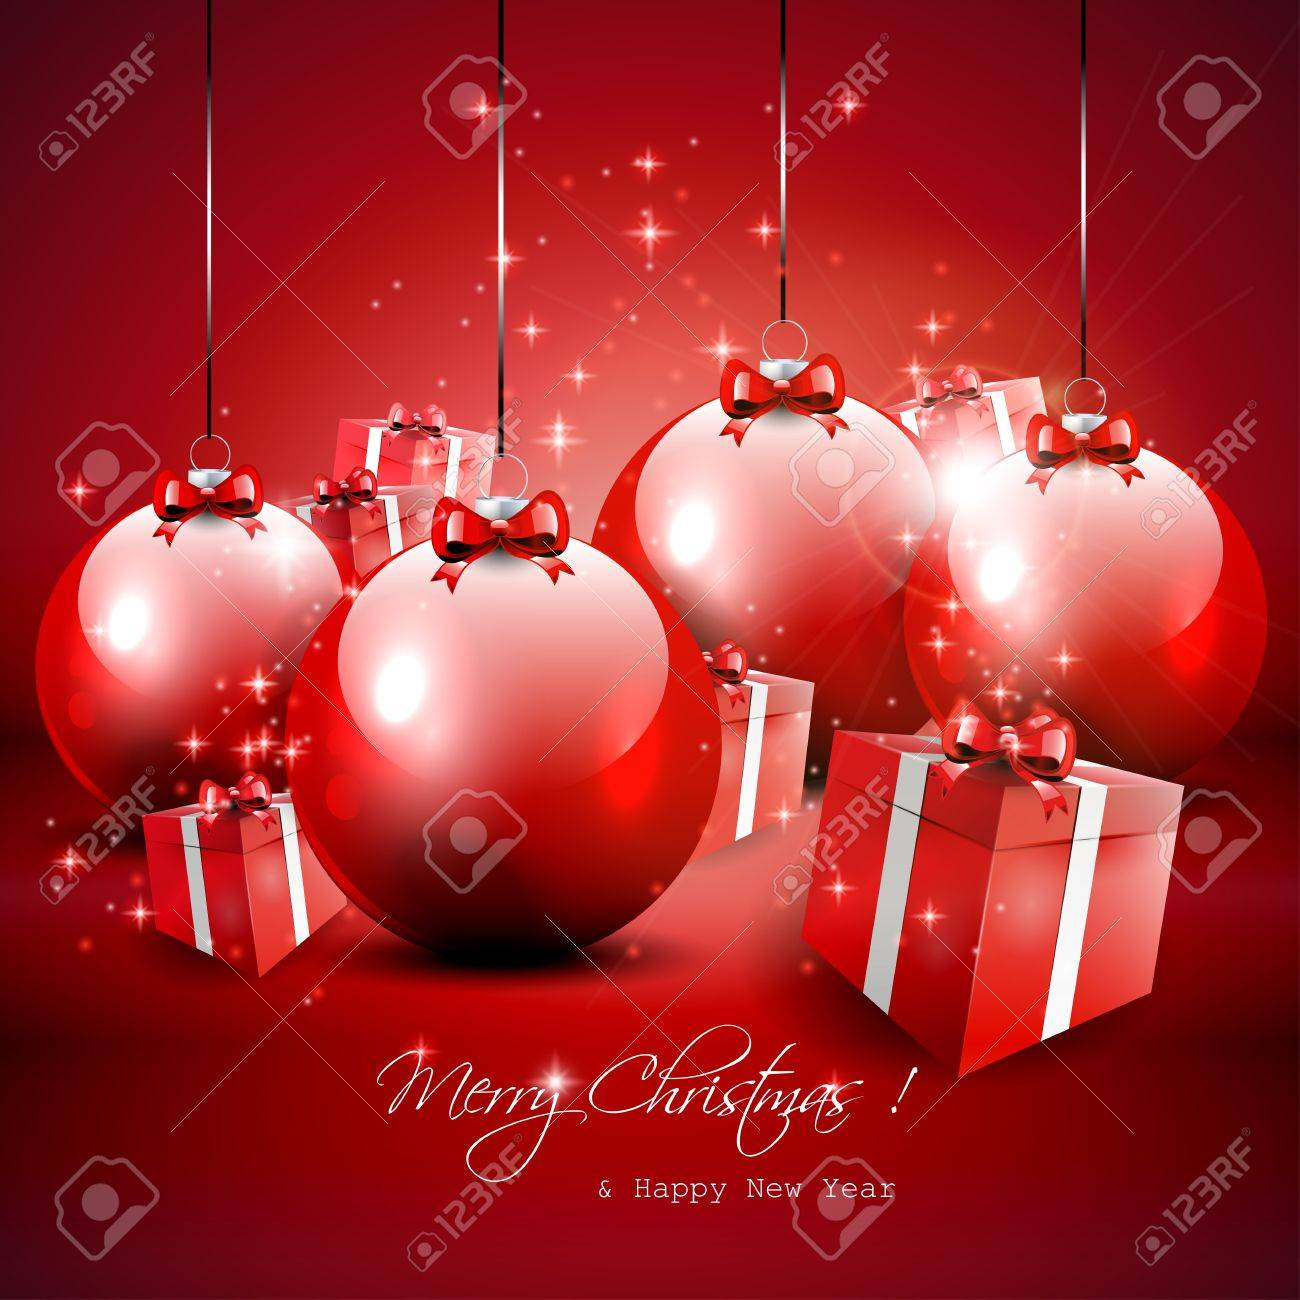 Elegant red Christmas background with baubles and gifts Stock Vector - 17544744